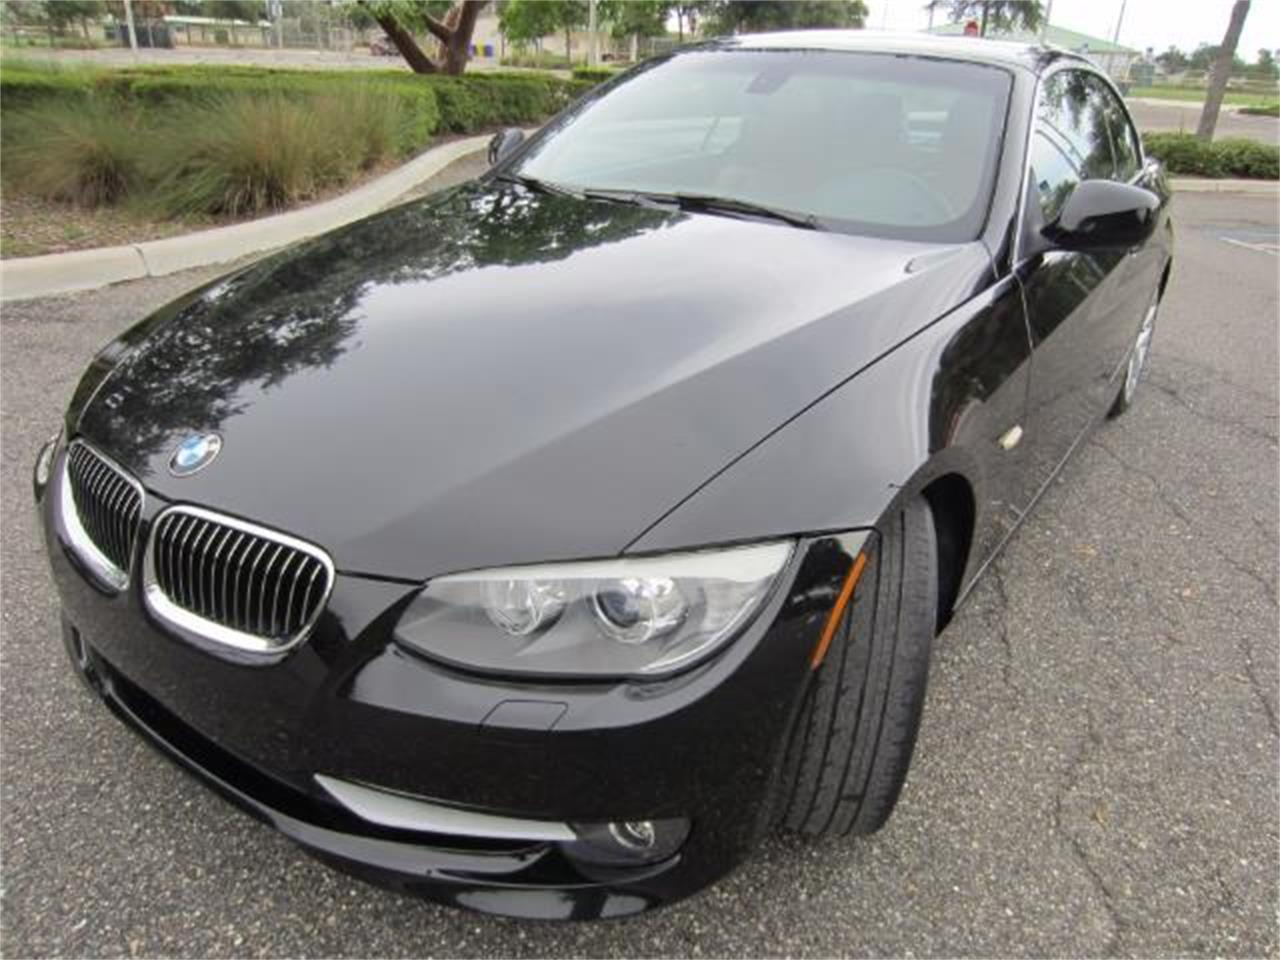 2011 BMW 328i for sale in Delray Beach, FL – photo 19